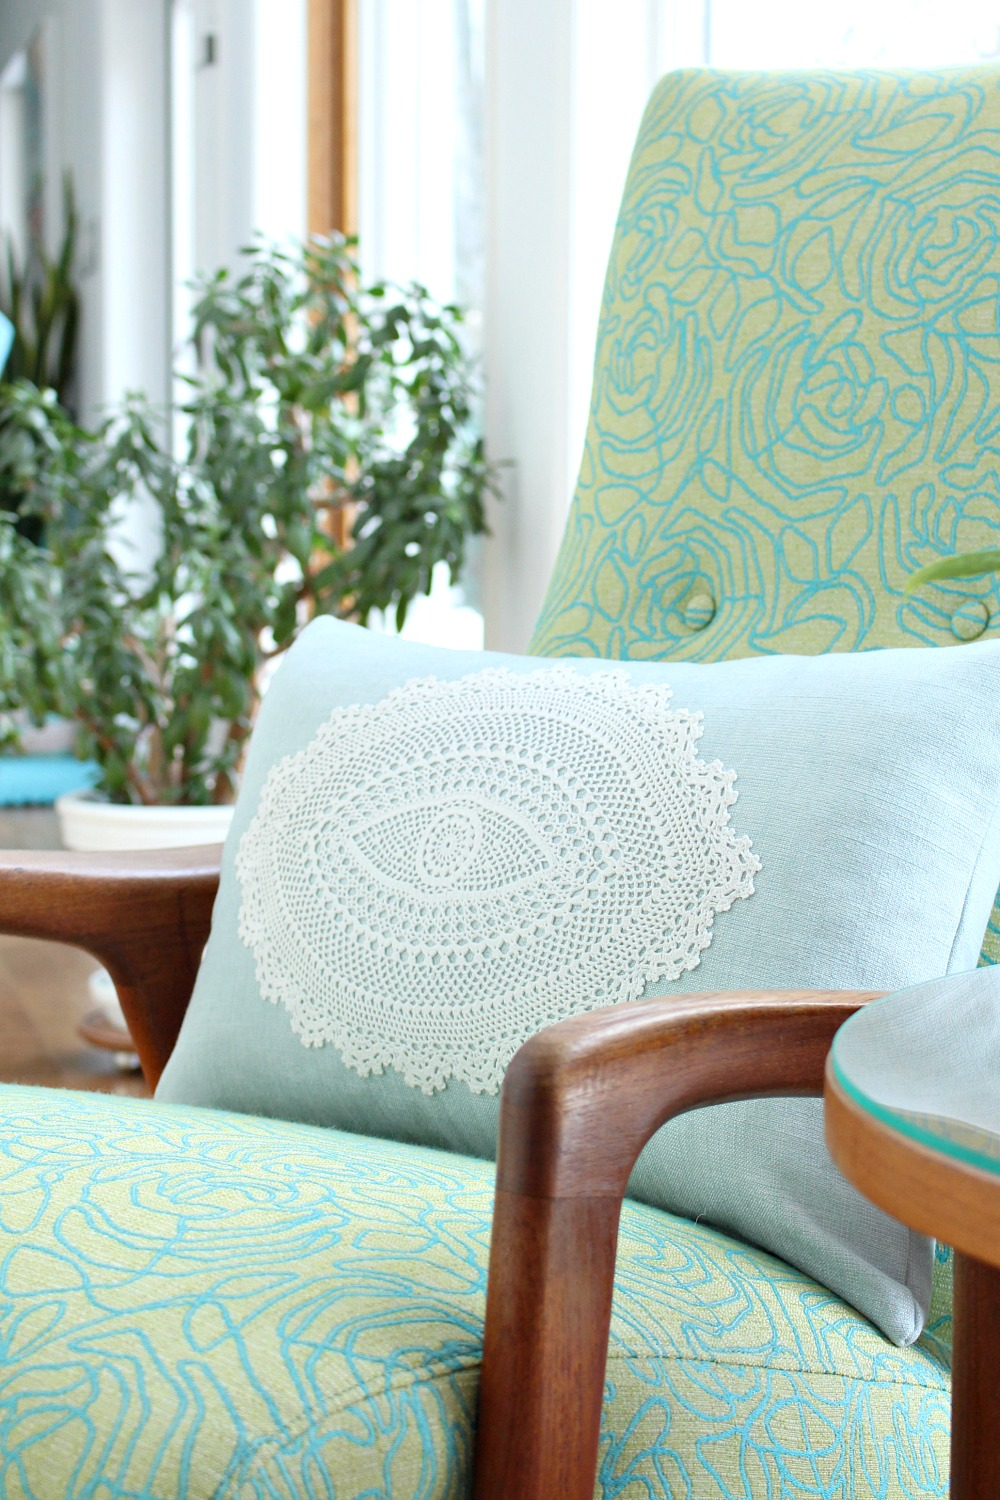 How to make a doily throw pillow